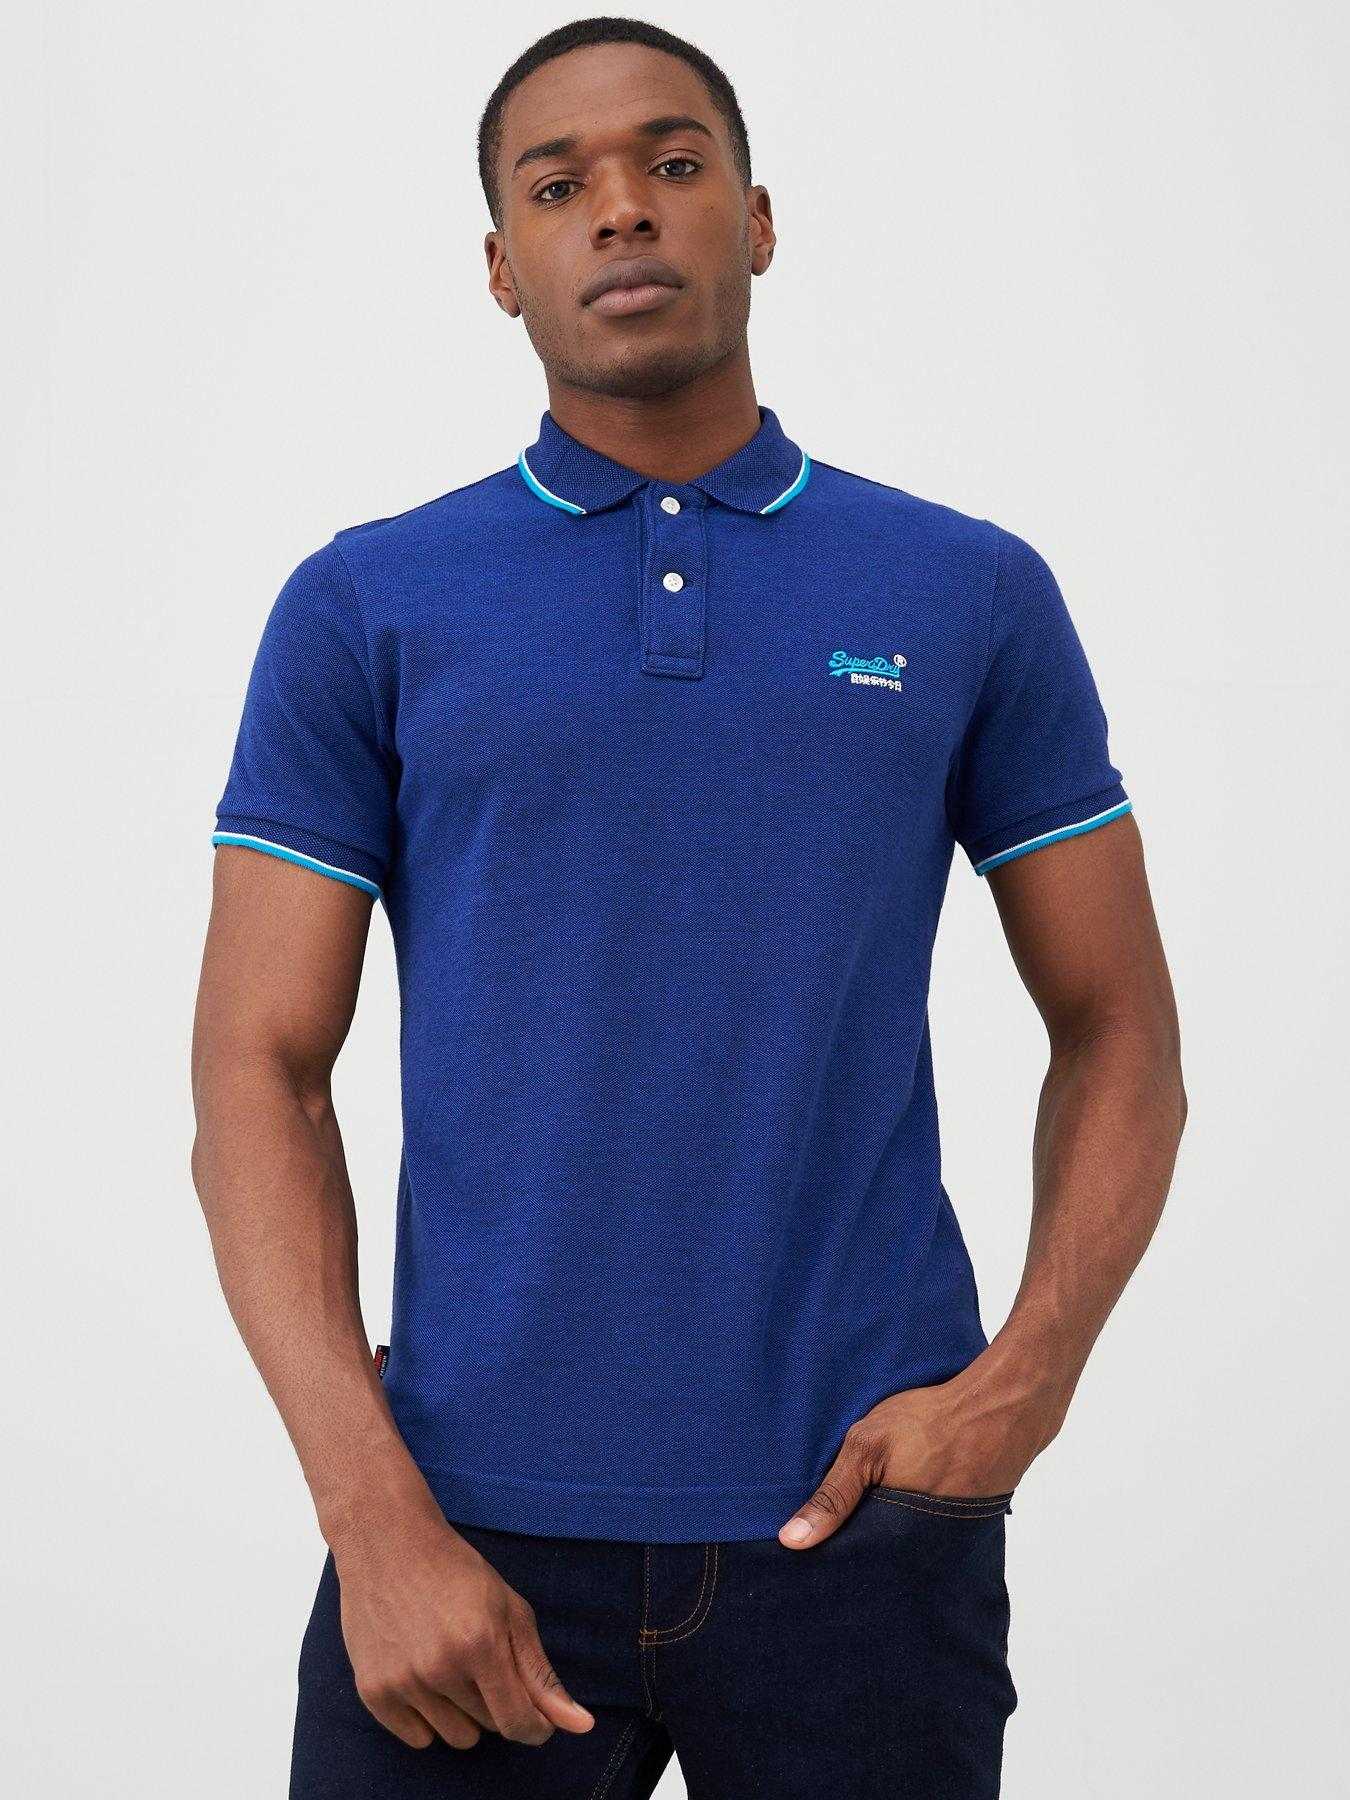 Mens Cross Embroidery Polo Shirts Embroidered Shirts Mens Polo T-Shirt